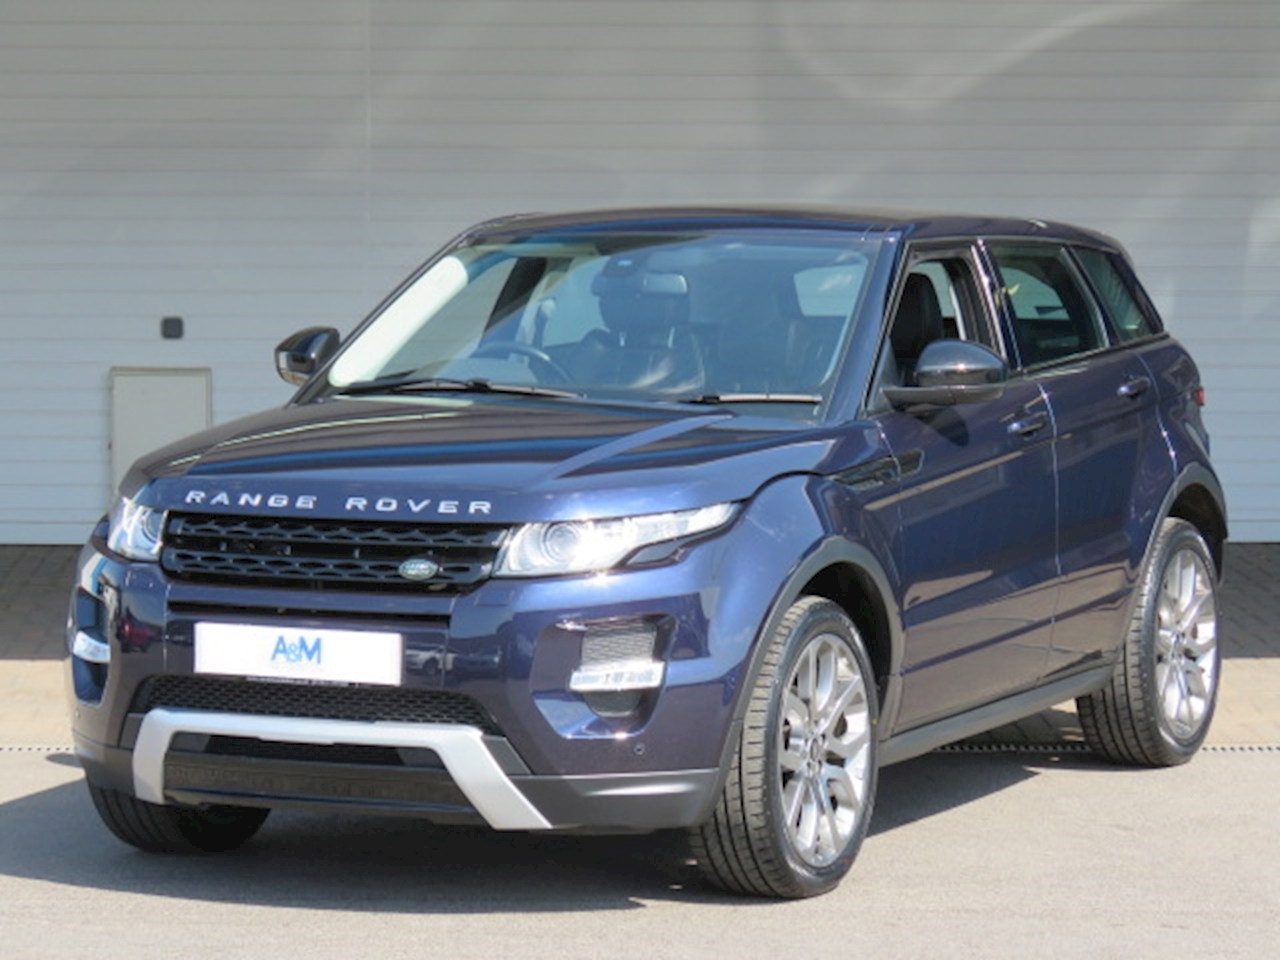 Land Rover Range Rover Evoque Dynamic 2.2 5dr SUV Automatic Diesel